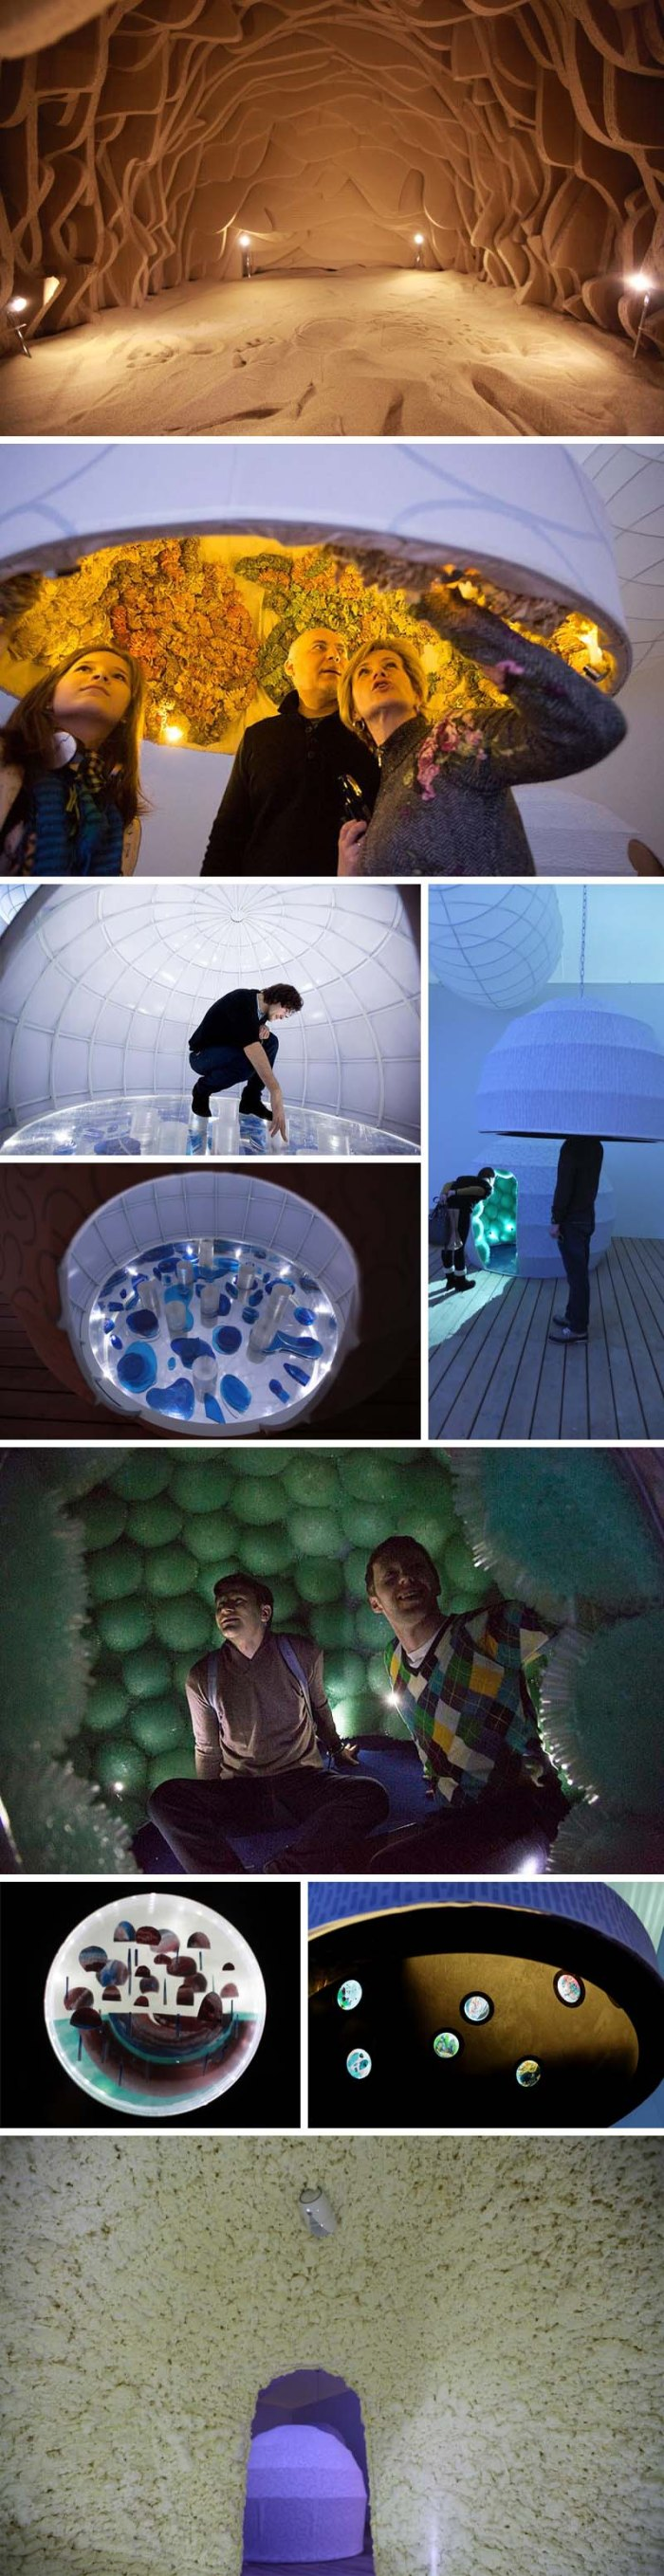 Danielle Tay, Installation Art, Pods, Garage Center for Contemporary Culture, immersive art, cool environments